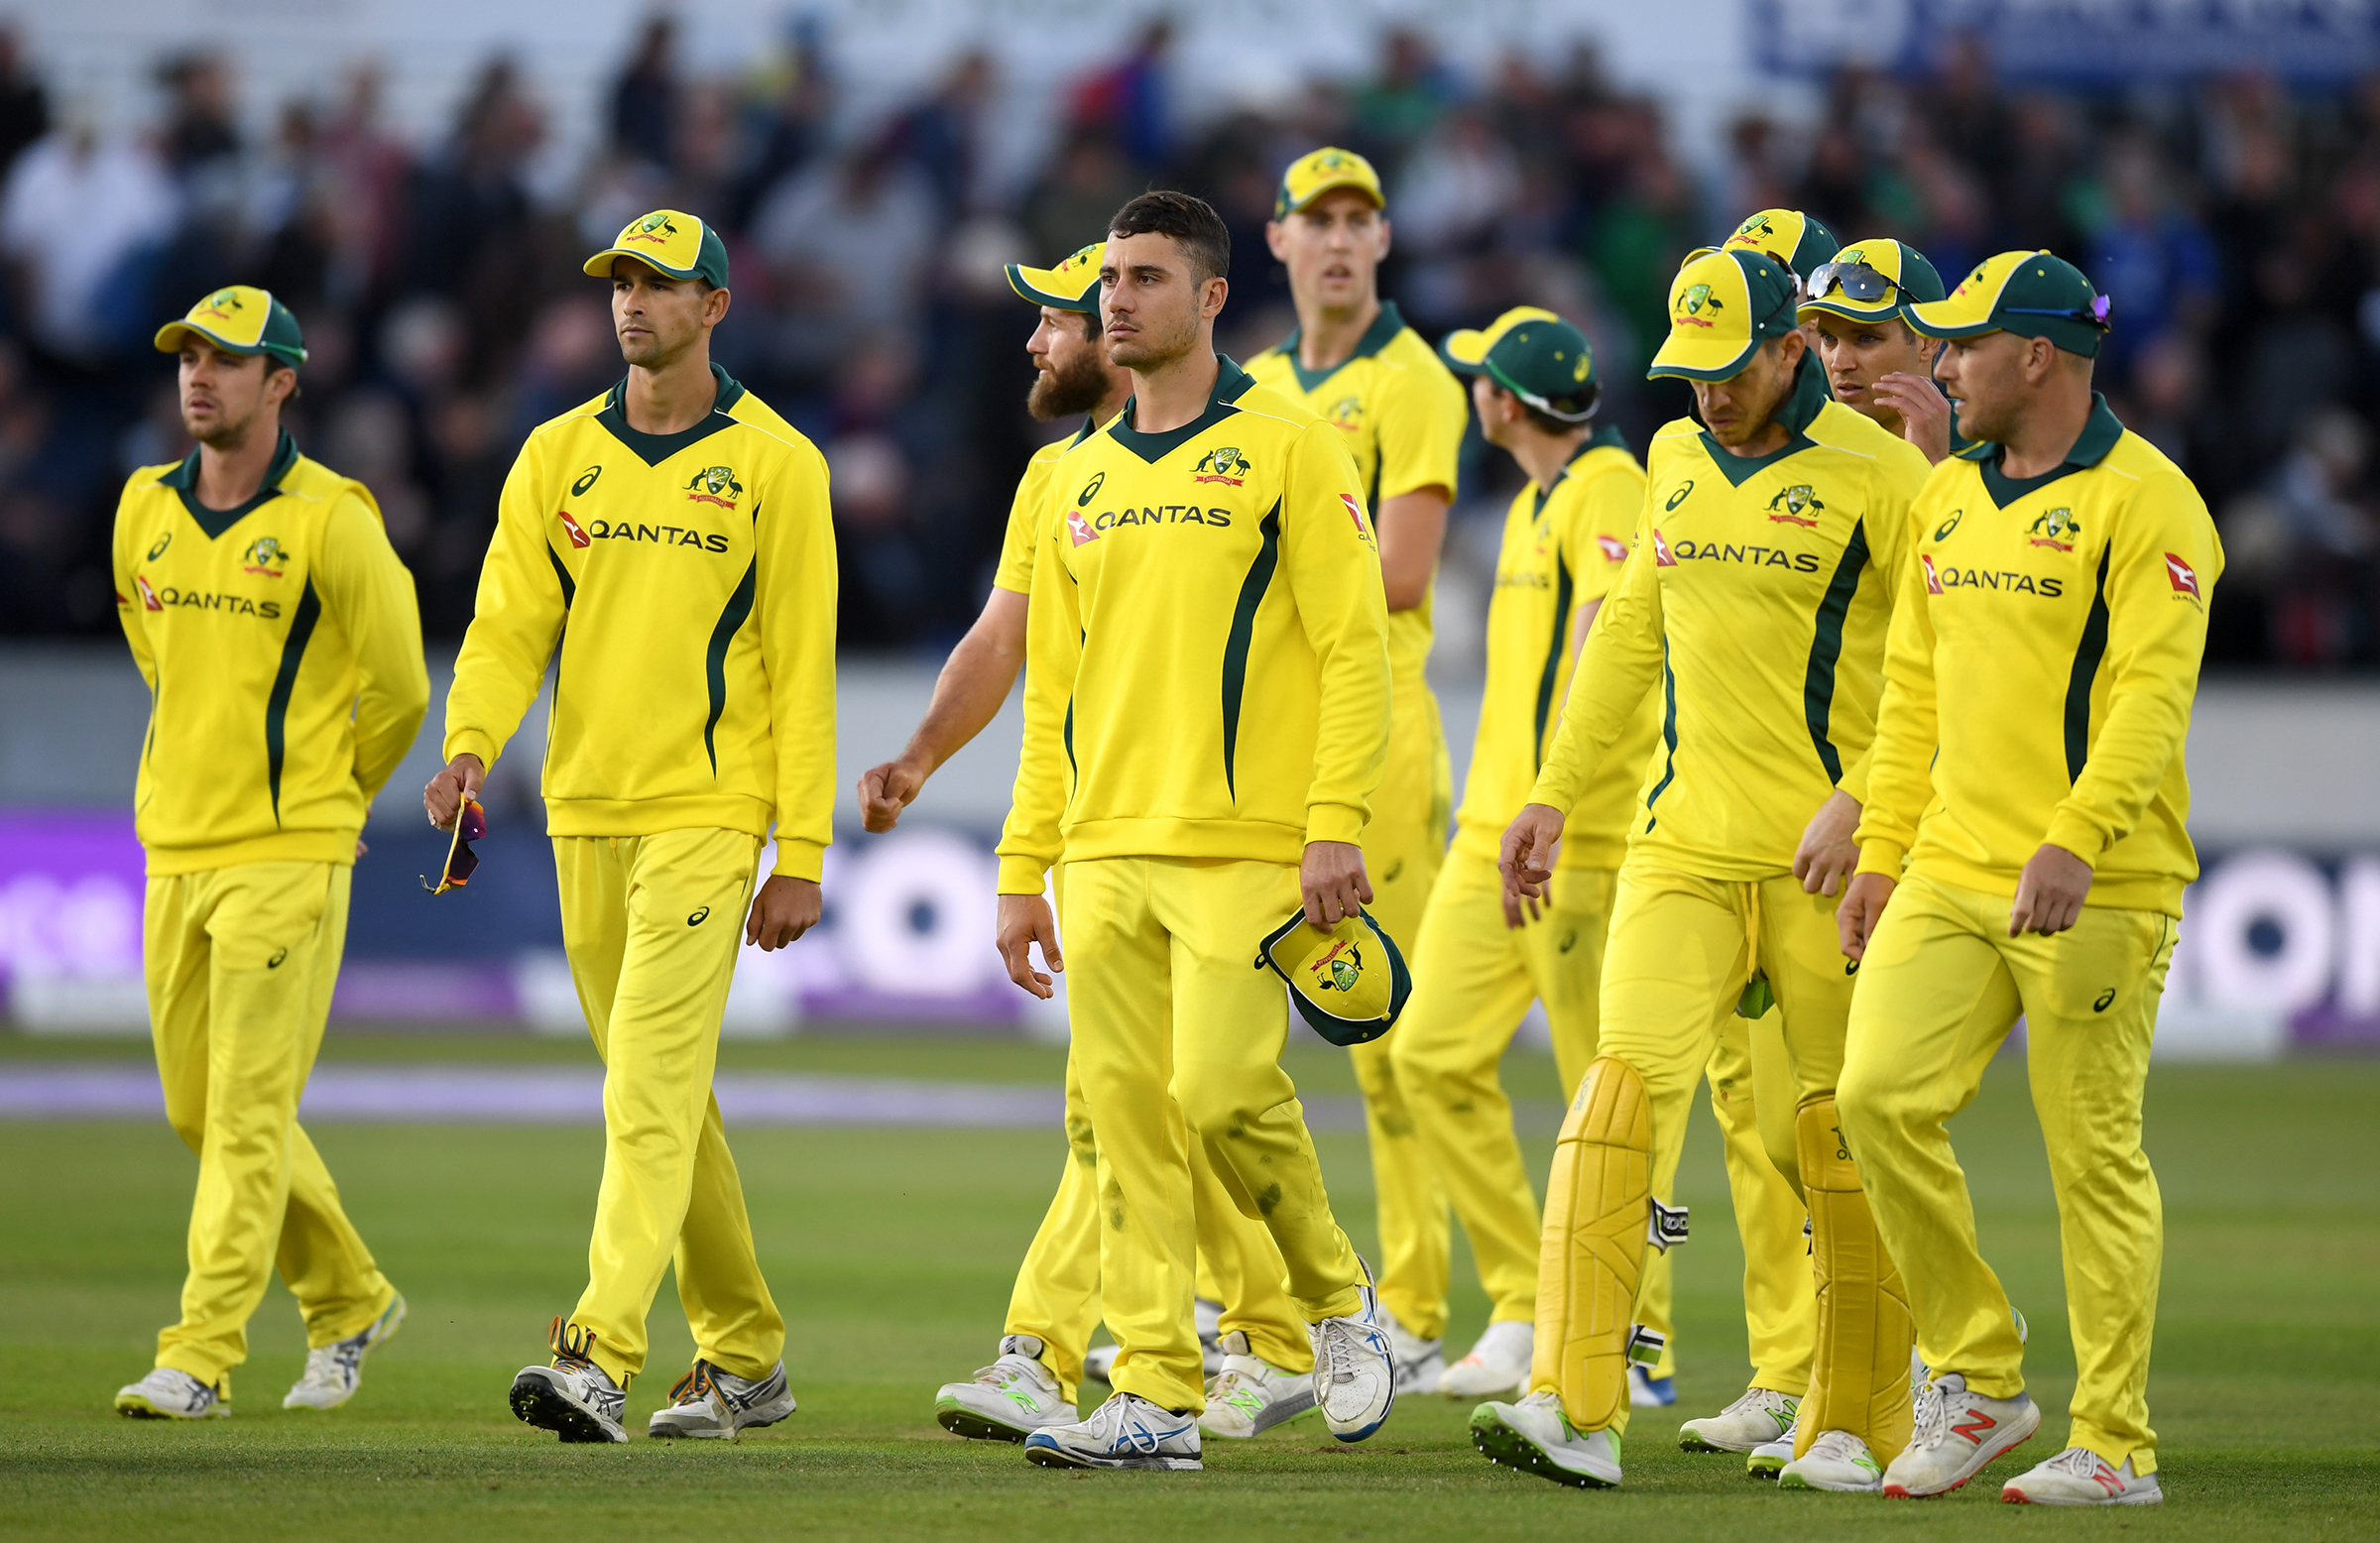 Australia slumped to their fourth straight loss // Getty